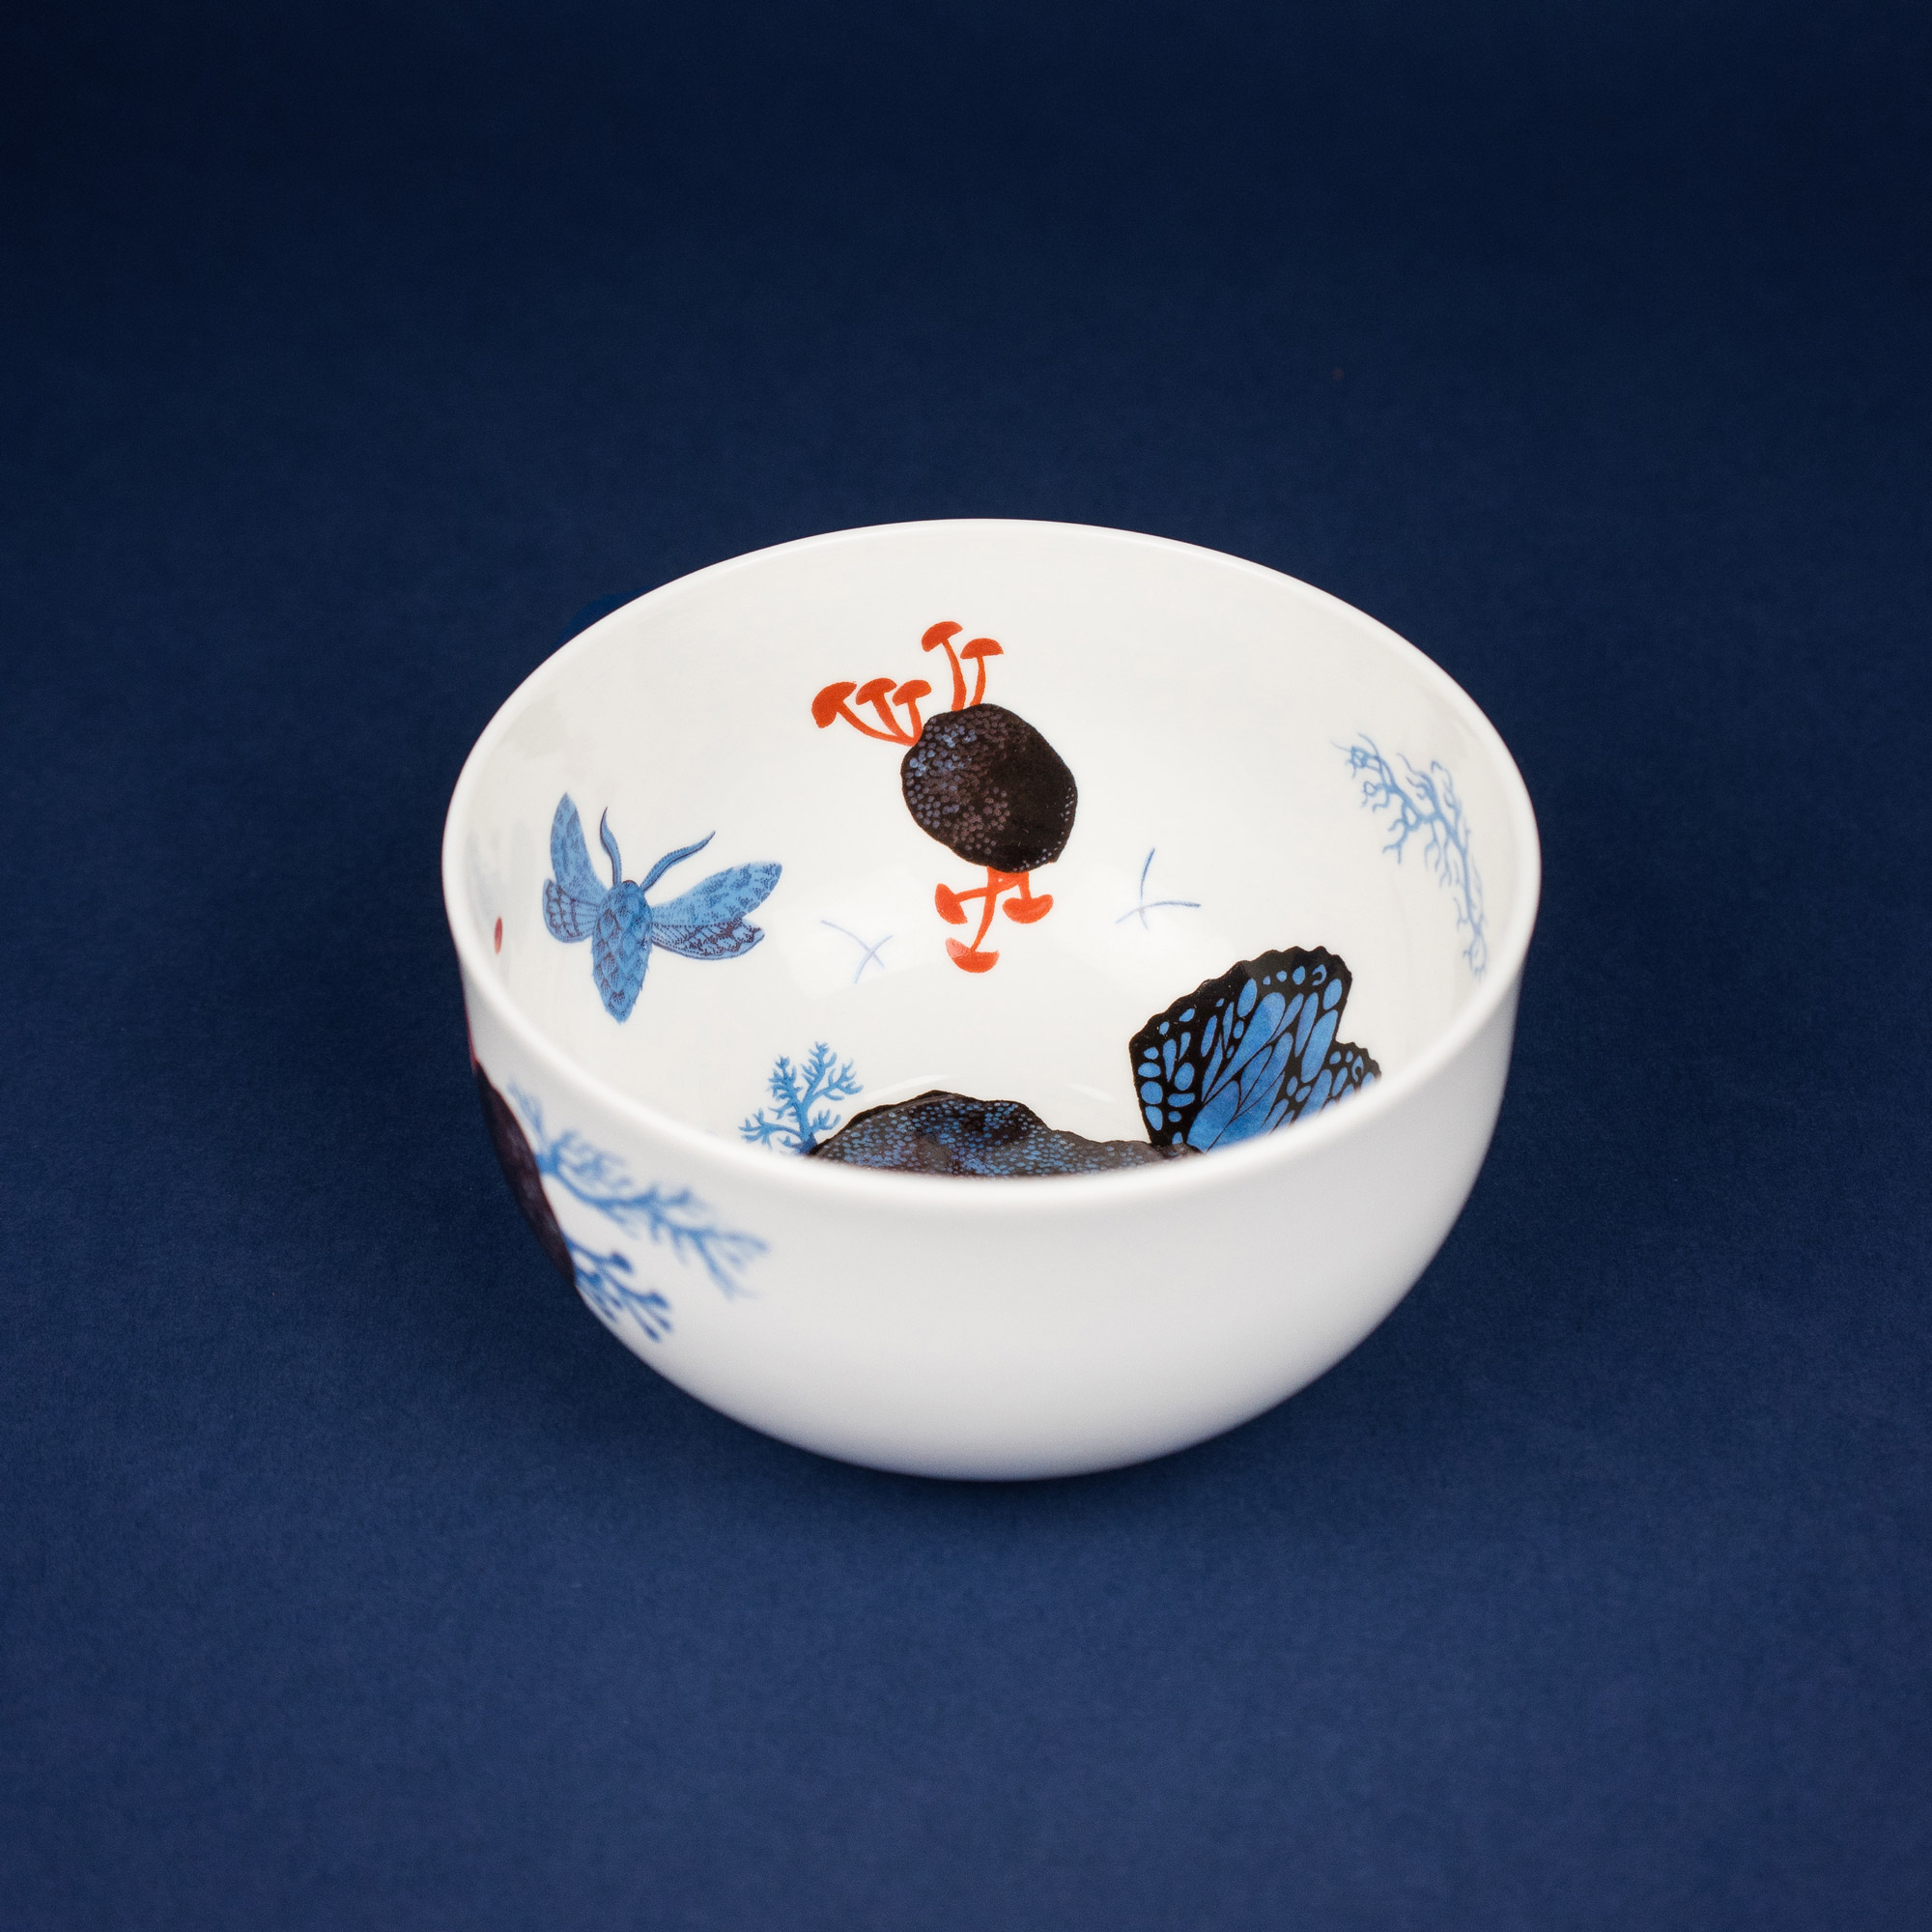 Porcelain bowl with floral print by Czech illustrator